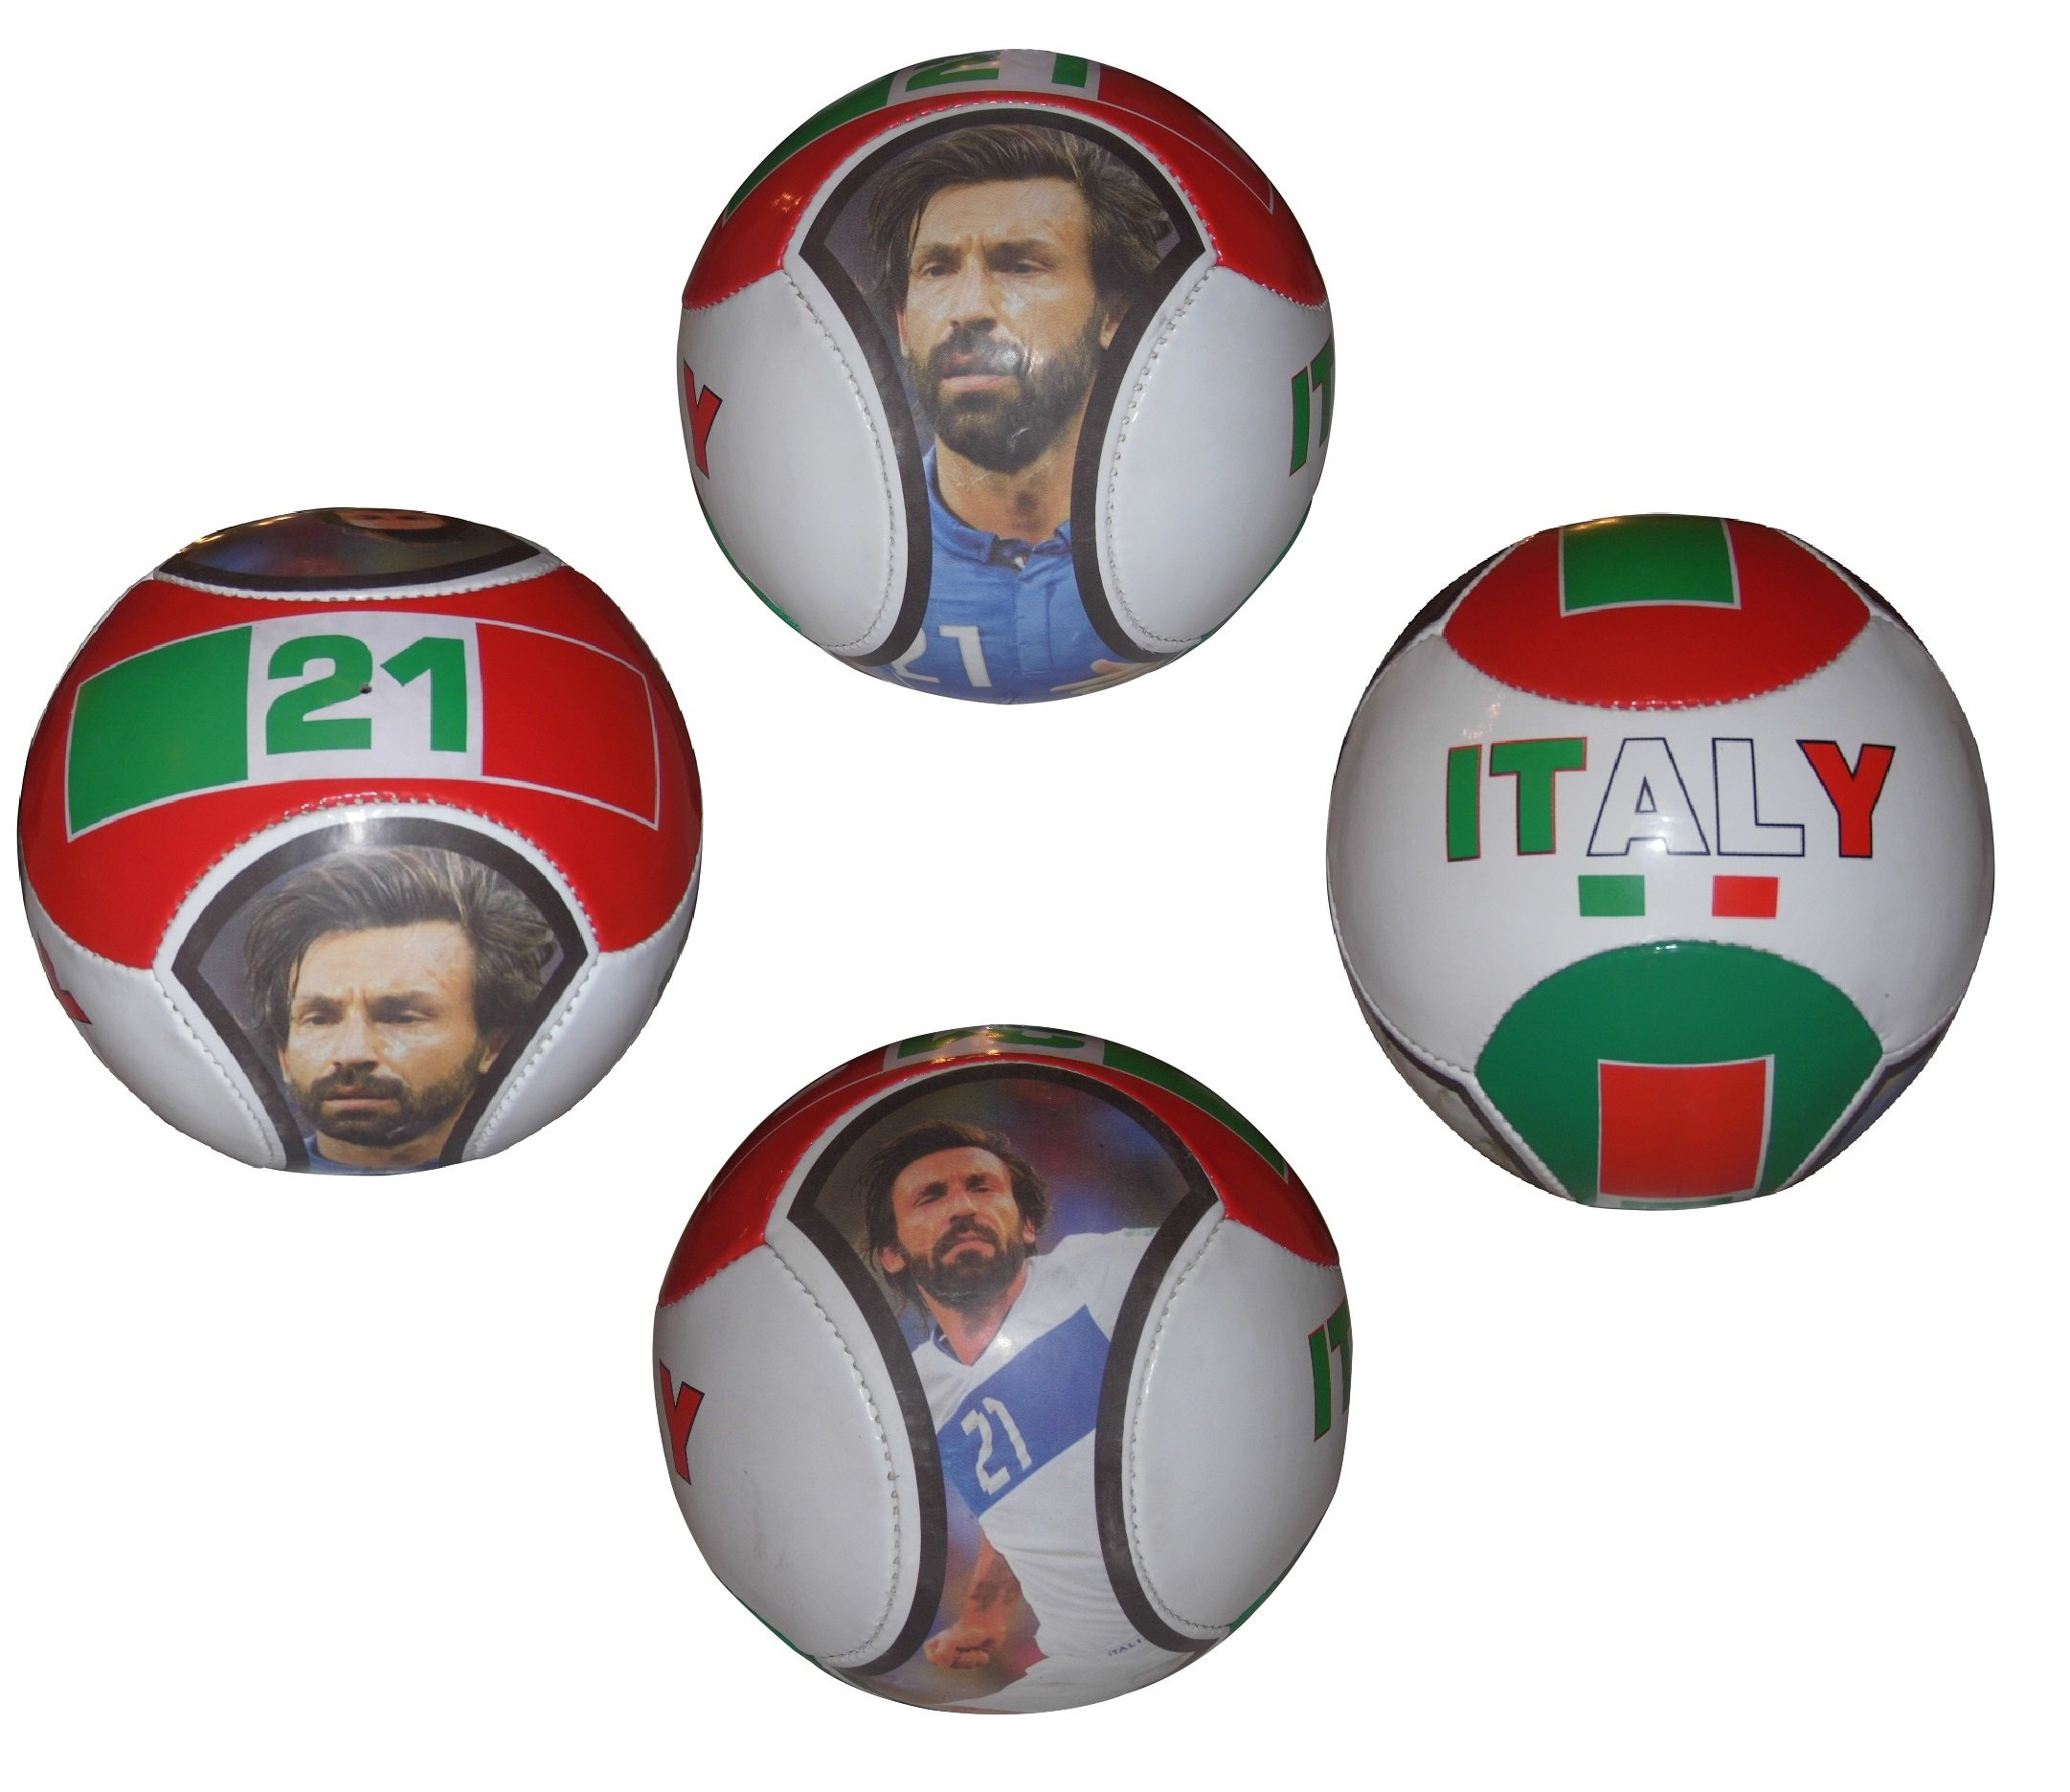 Forever Fanatics Italy Pirlo #21 Soccer Ball Kids & Adult Size 5 ✓ Best Gift For Fans ✓ Unique 6 Panel Design ✓ Durable Soft Touch Construction (Size 5, Italy Pirlo #21)